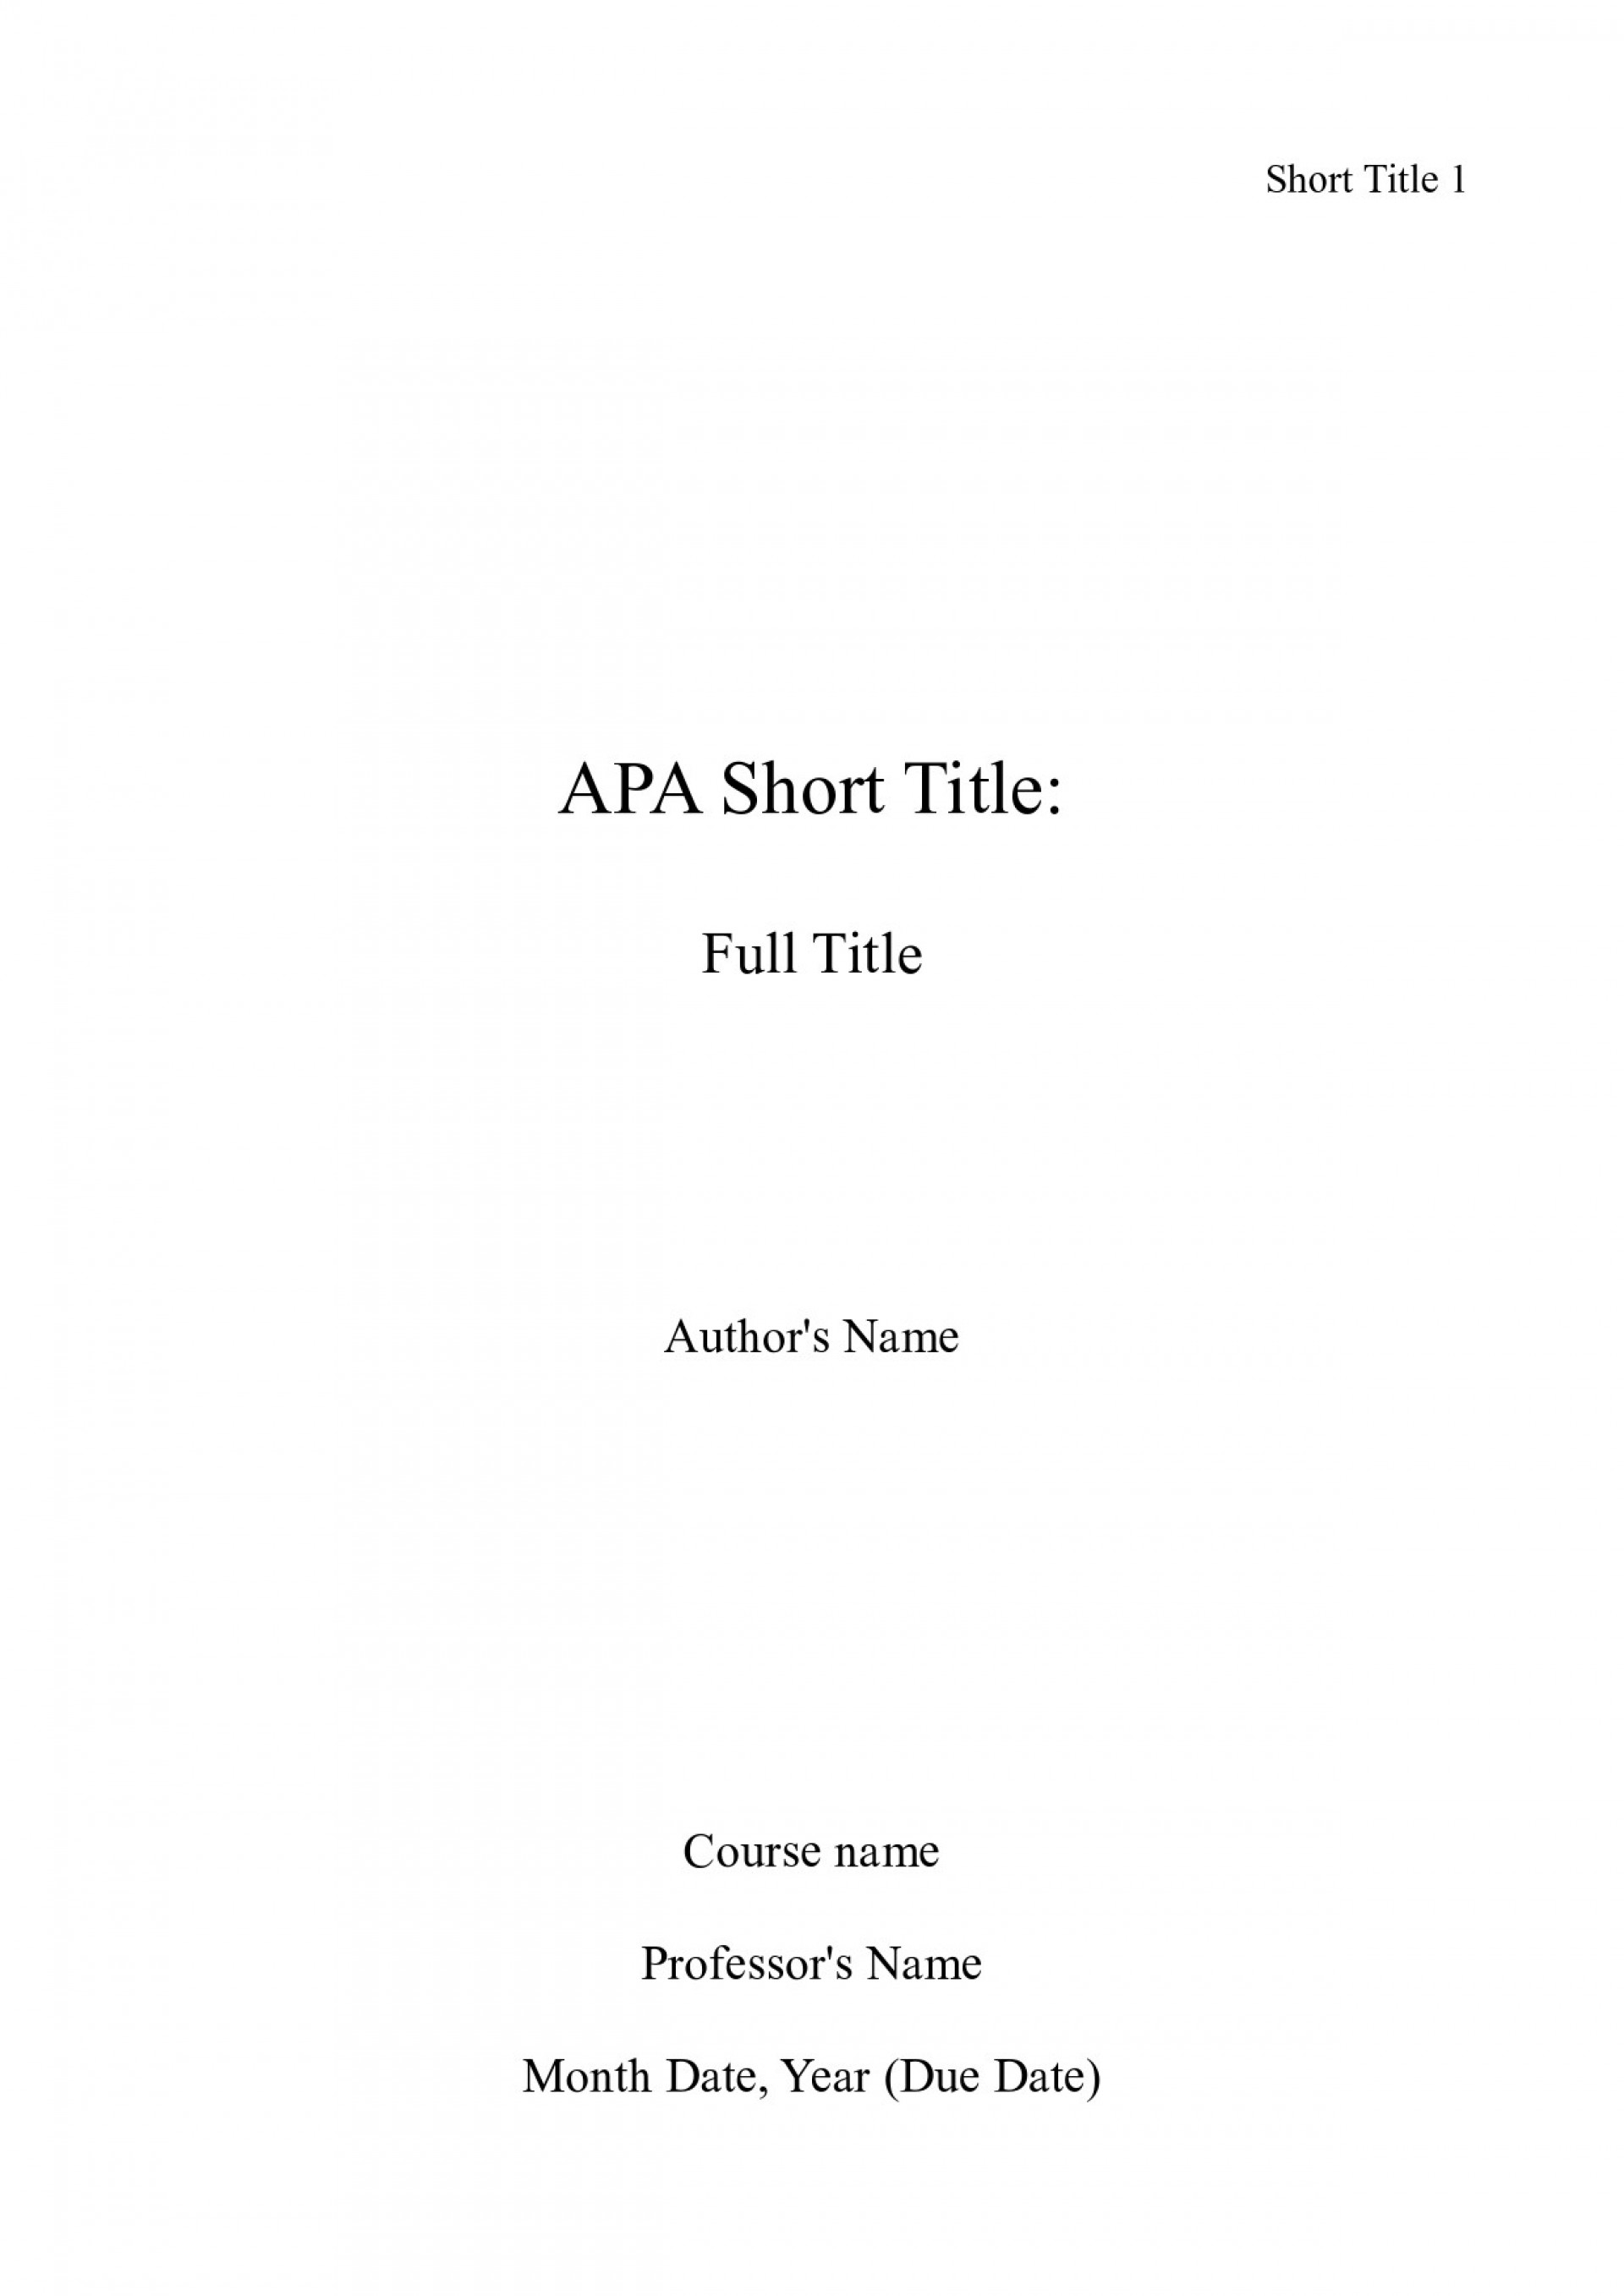 002 Apa Essay Cover Page Mla Format With Letter Best Of Writing Help Incredible Correct Title Front Research 1920